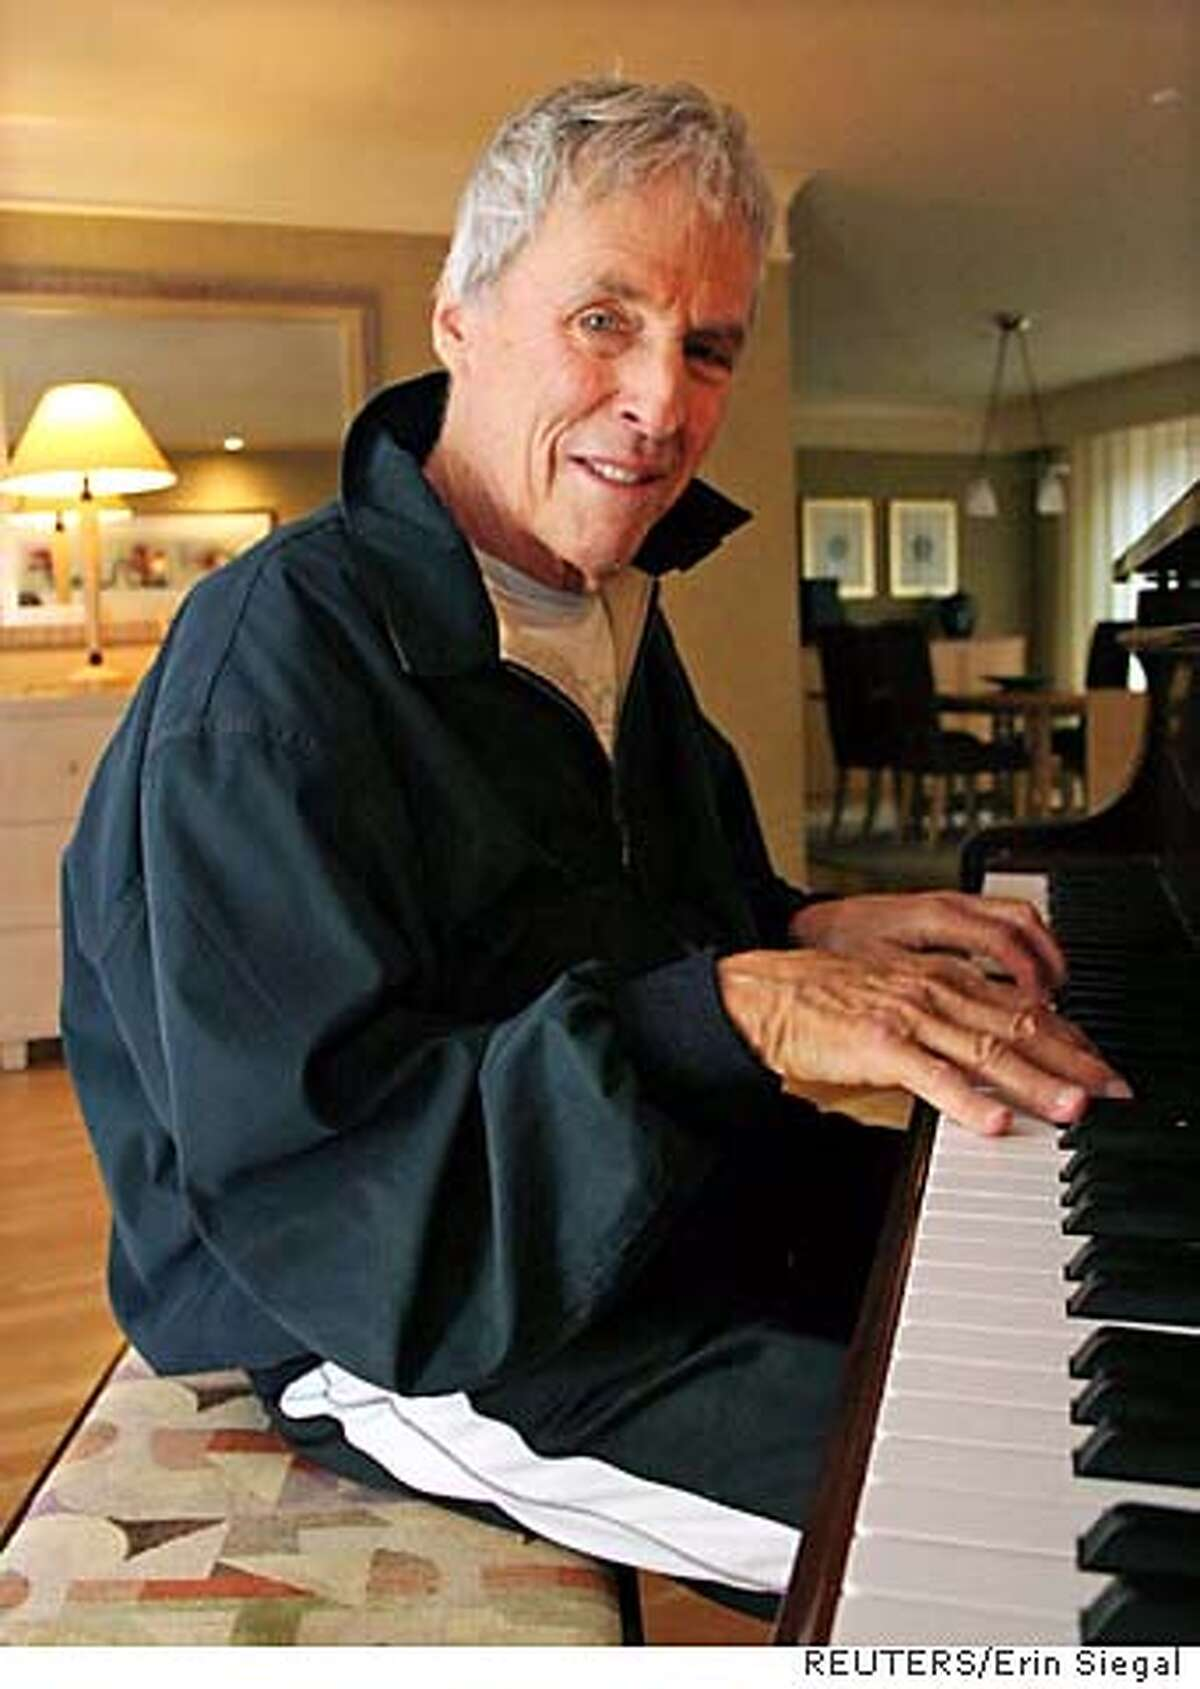 """Burt Bacharach, winner of three Oscars and six Grammys, is seen in his hotel room in New York October 10, 2005. The legendary, 77-year-old composer has found his voice in a politically charged album """"At This Time"""" that features his first lyrics ever in a nearly 50-year career creating some of pop music's best-known love songs. Picture taken October 10, 2005. To accompany feature LEISURE BACHARACH. REUTERS/Erin Siegal 0"""